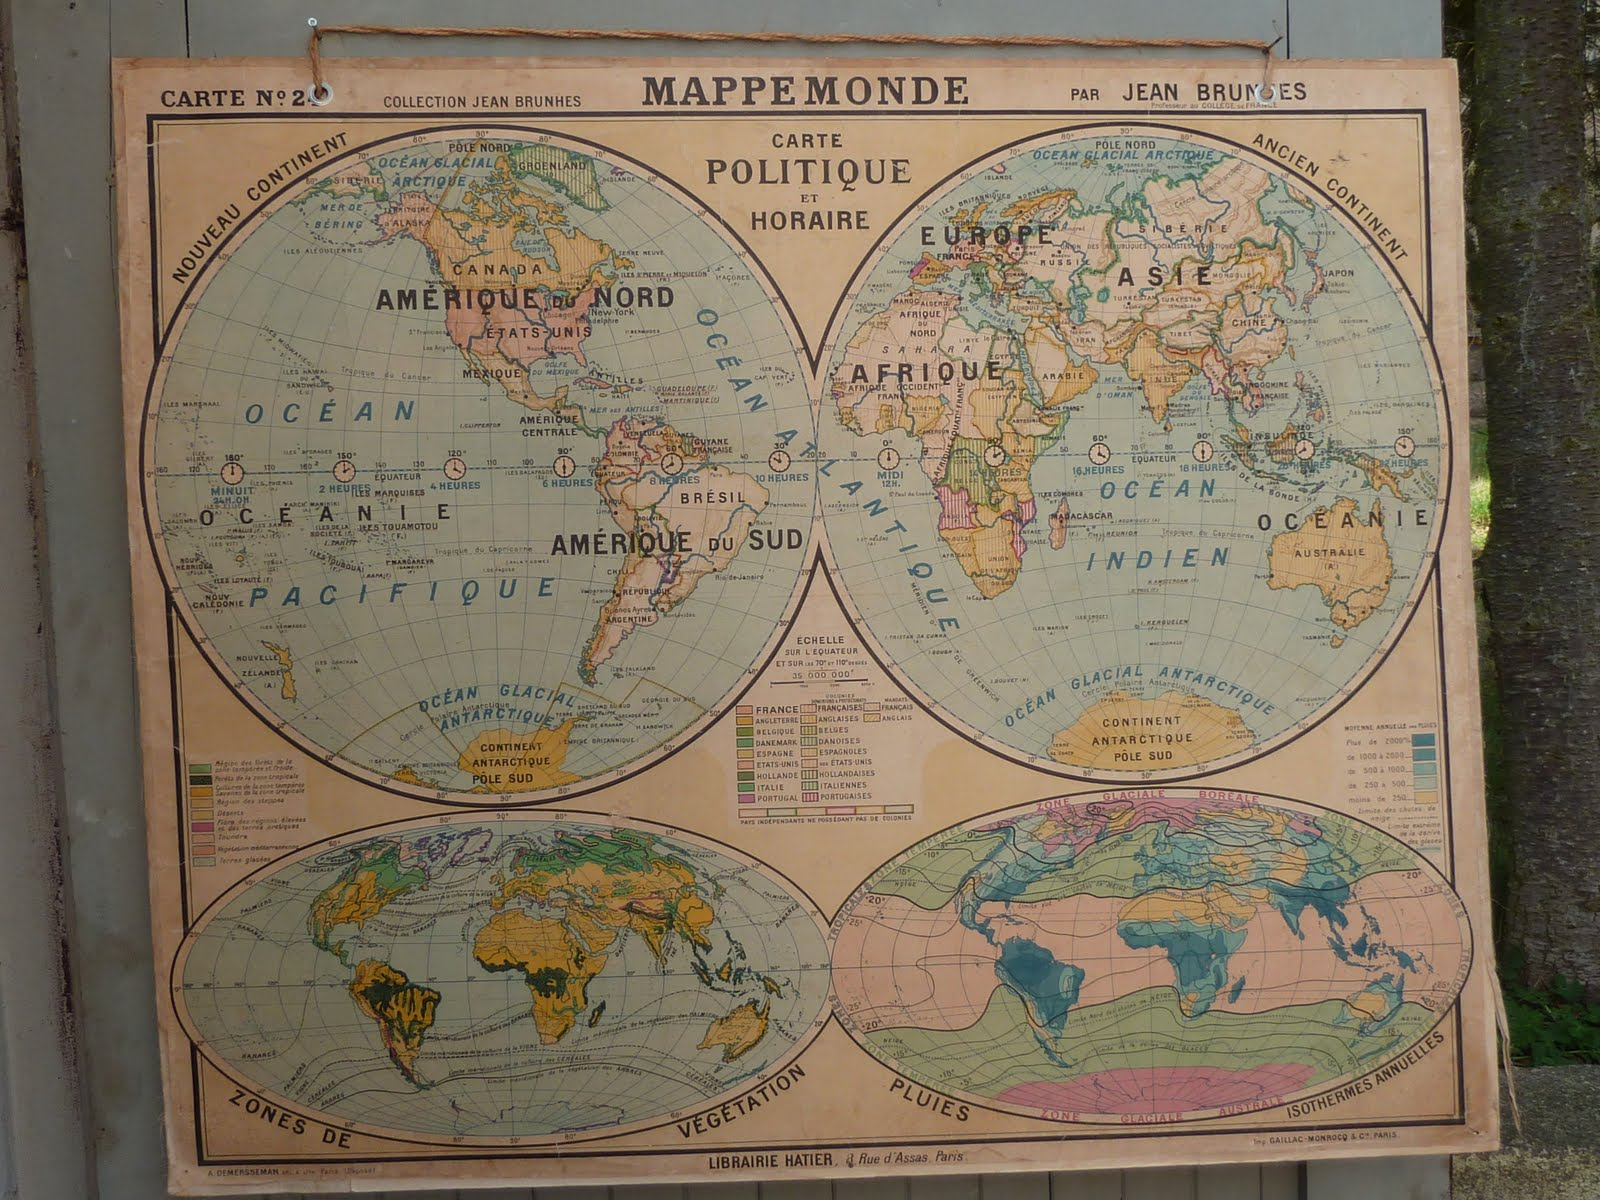 Pull down world map like this item customized world map poster french antique world map used in classroom sold gumiabroncs Image collections